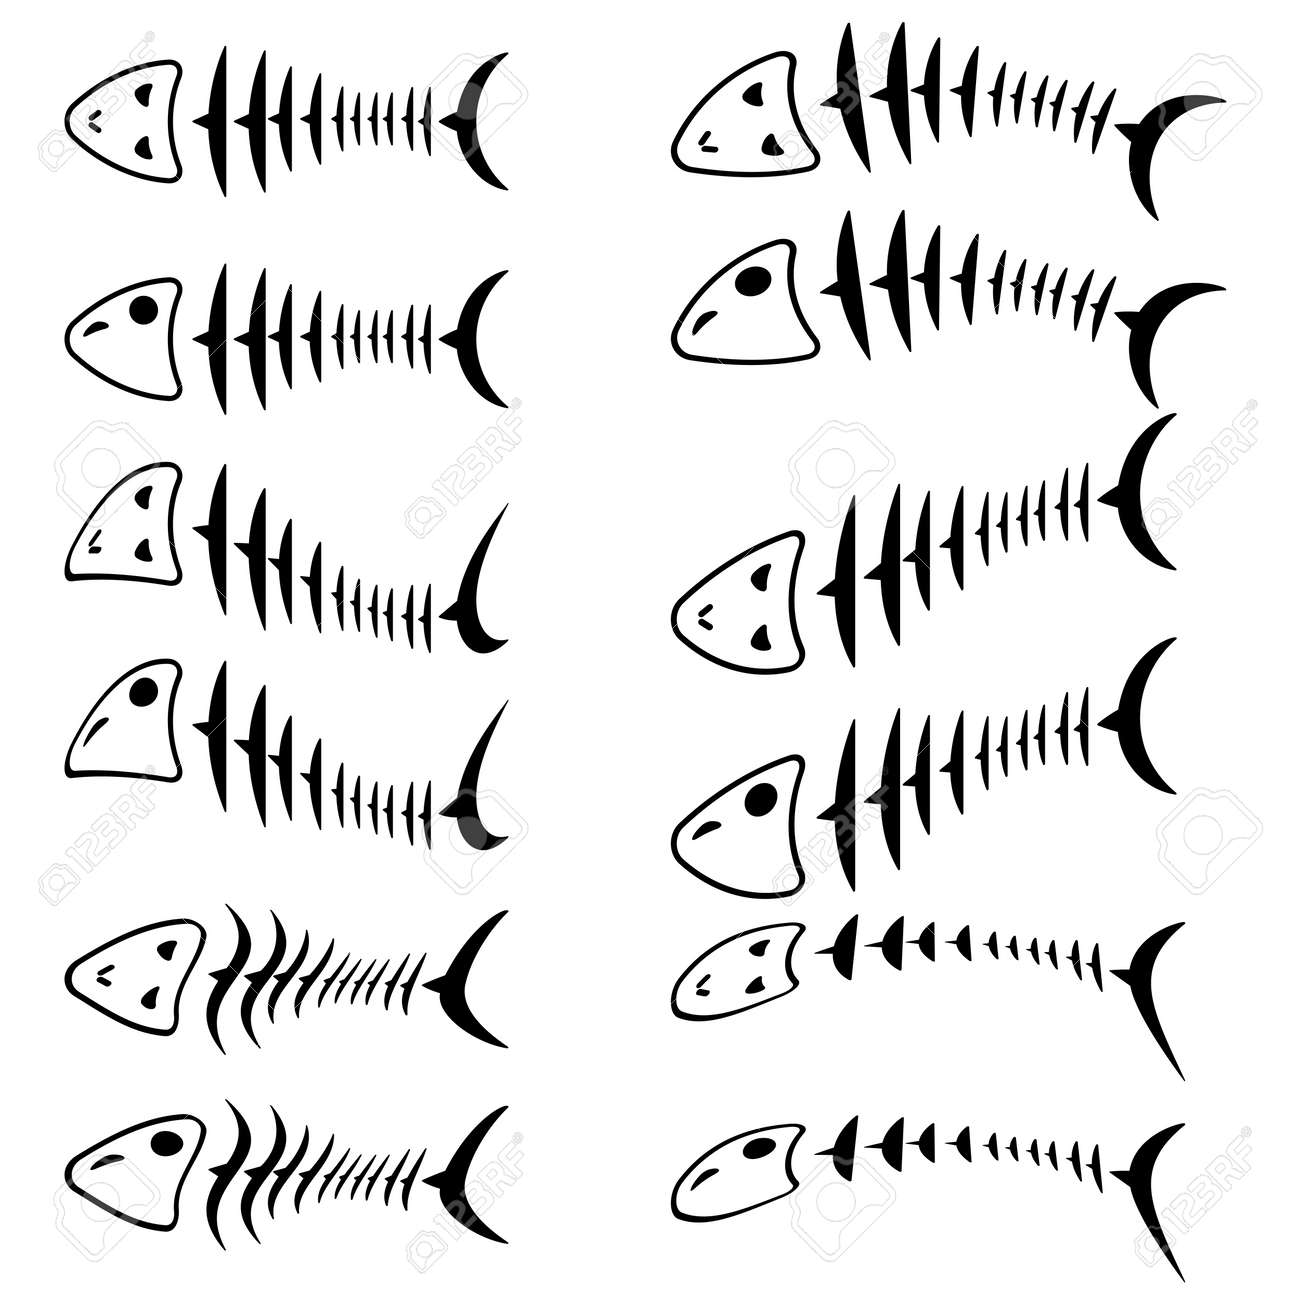 A set of fish skeletons. Vector illustration. Stock Vector - 12482041